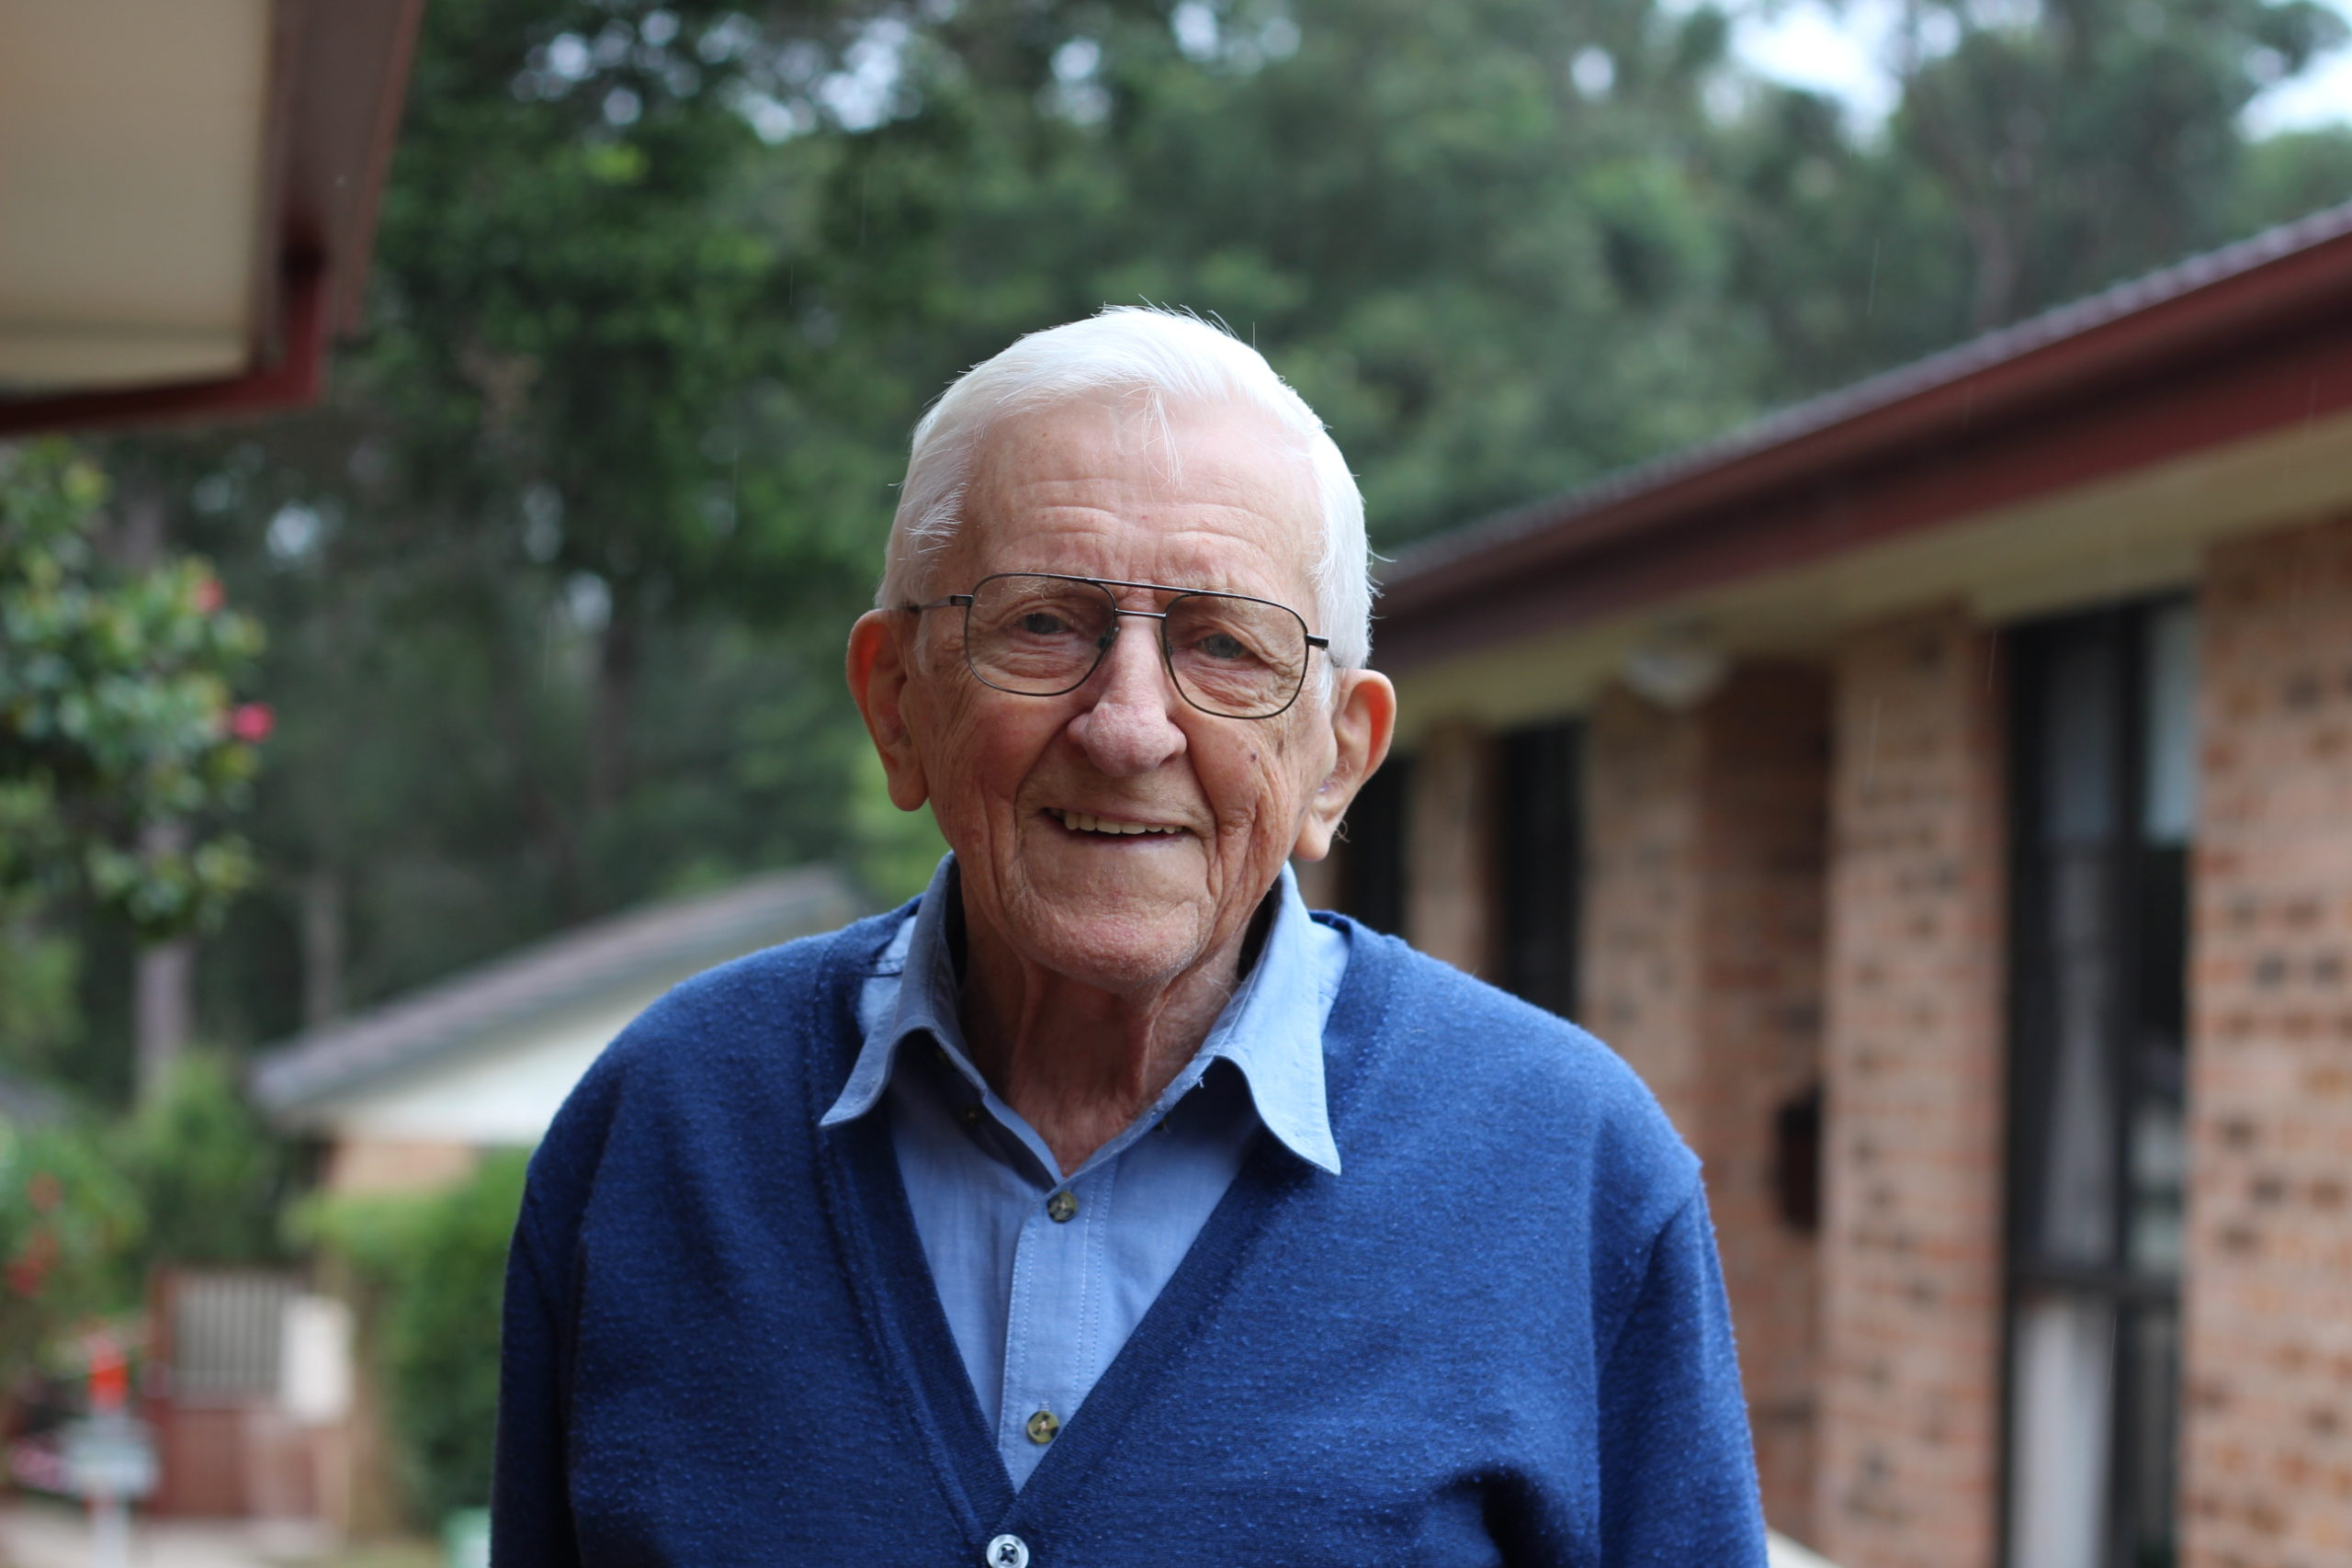 Dick-Udy-7-Aug-2020-scaled | RSL LifeCare - provide care and service to war veterans, retirement villages and accommodation, aged care services and assisted living